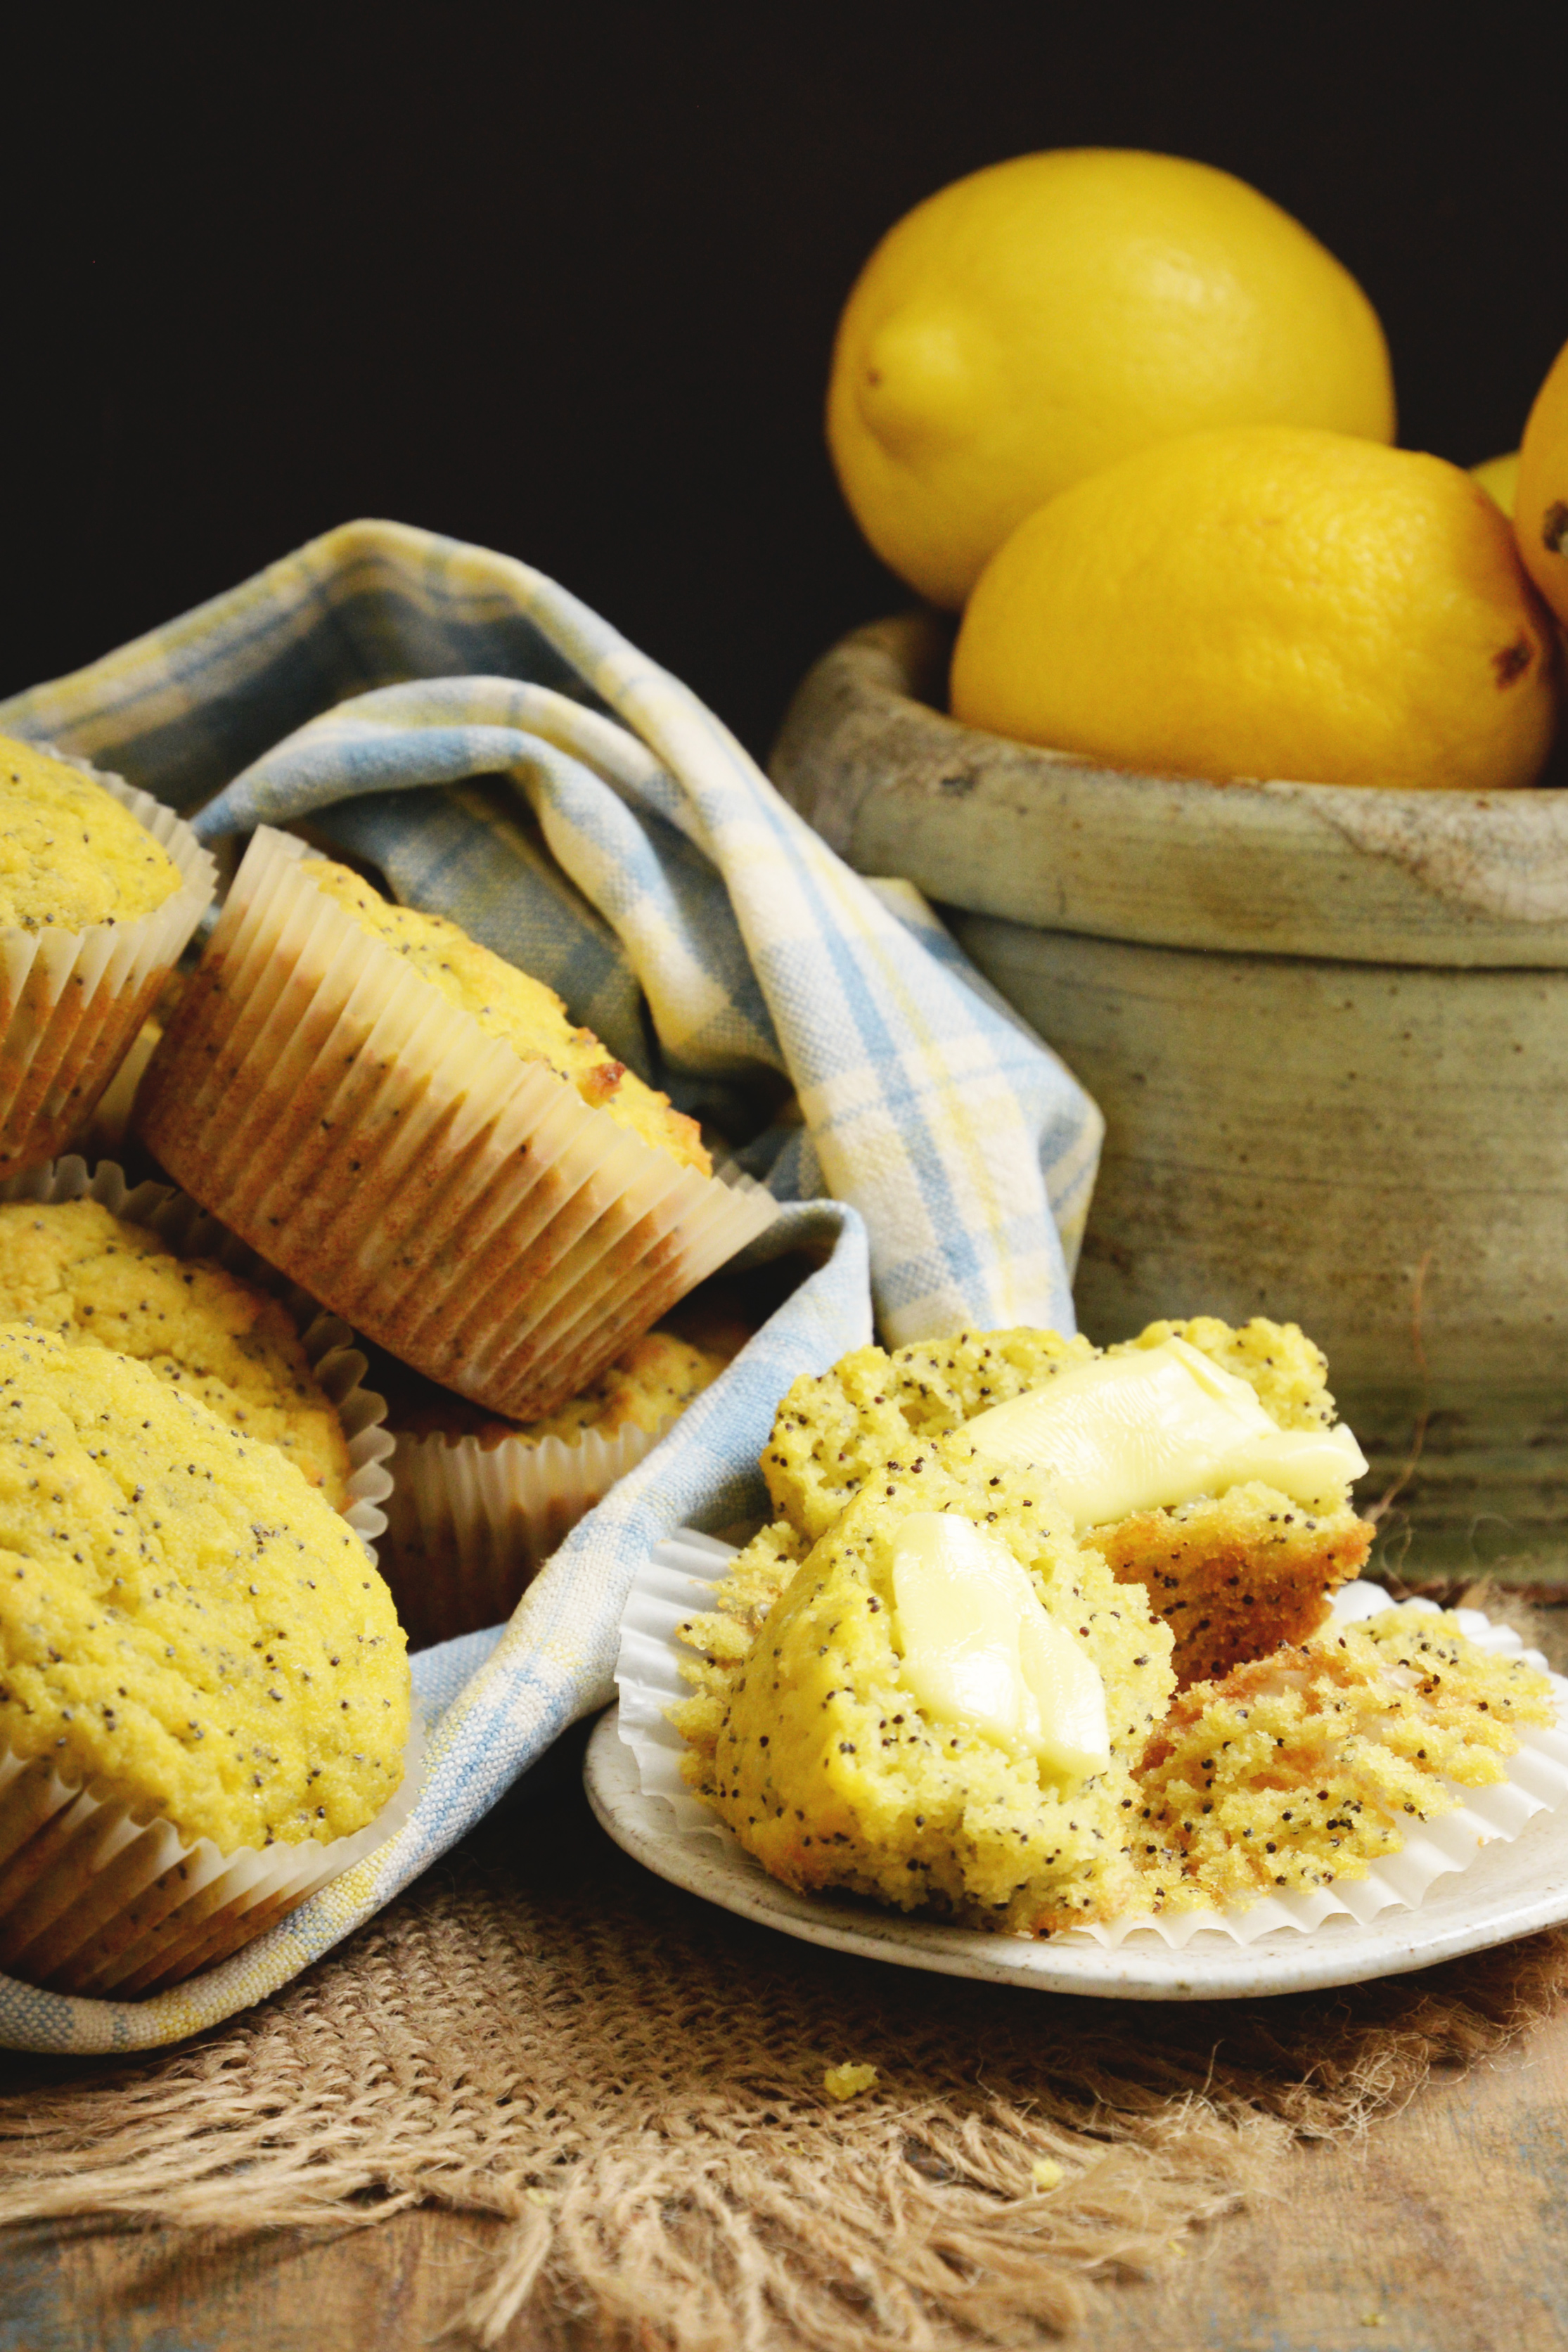 Lemon-Poppy-Seed-Muffins-buttered and ready for eating.